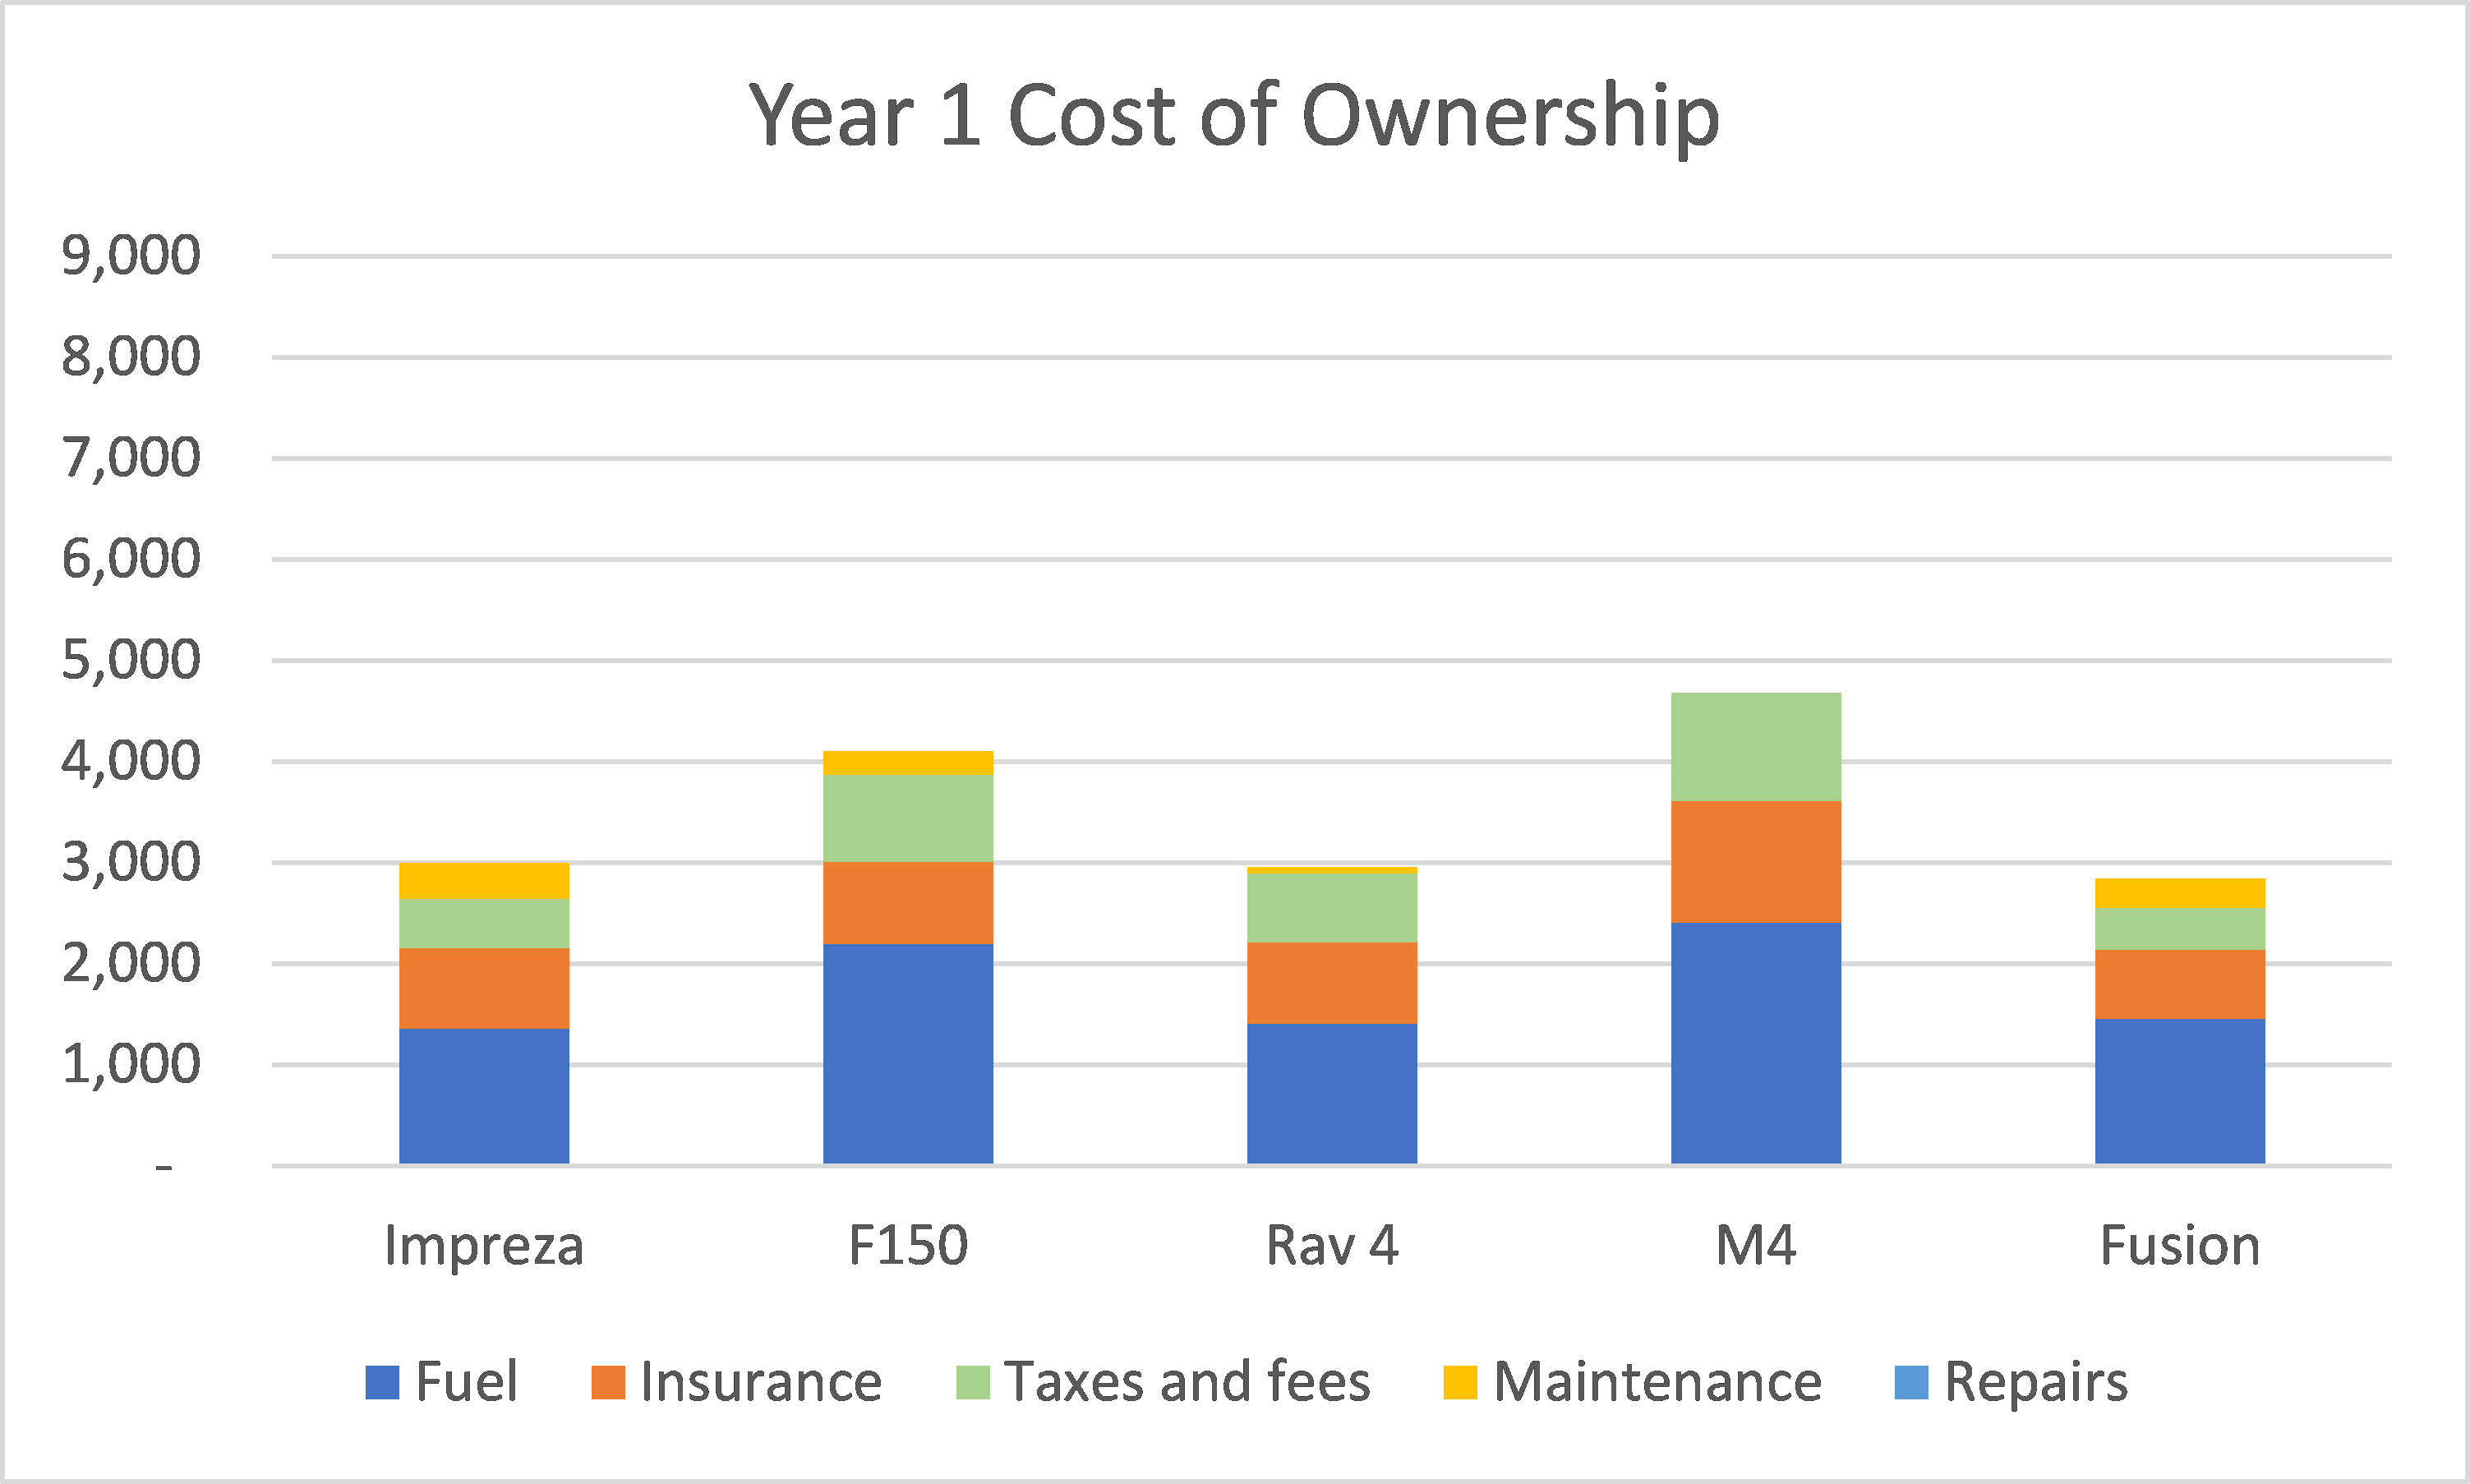 Year 1 Cost of Ownership